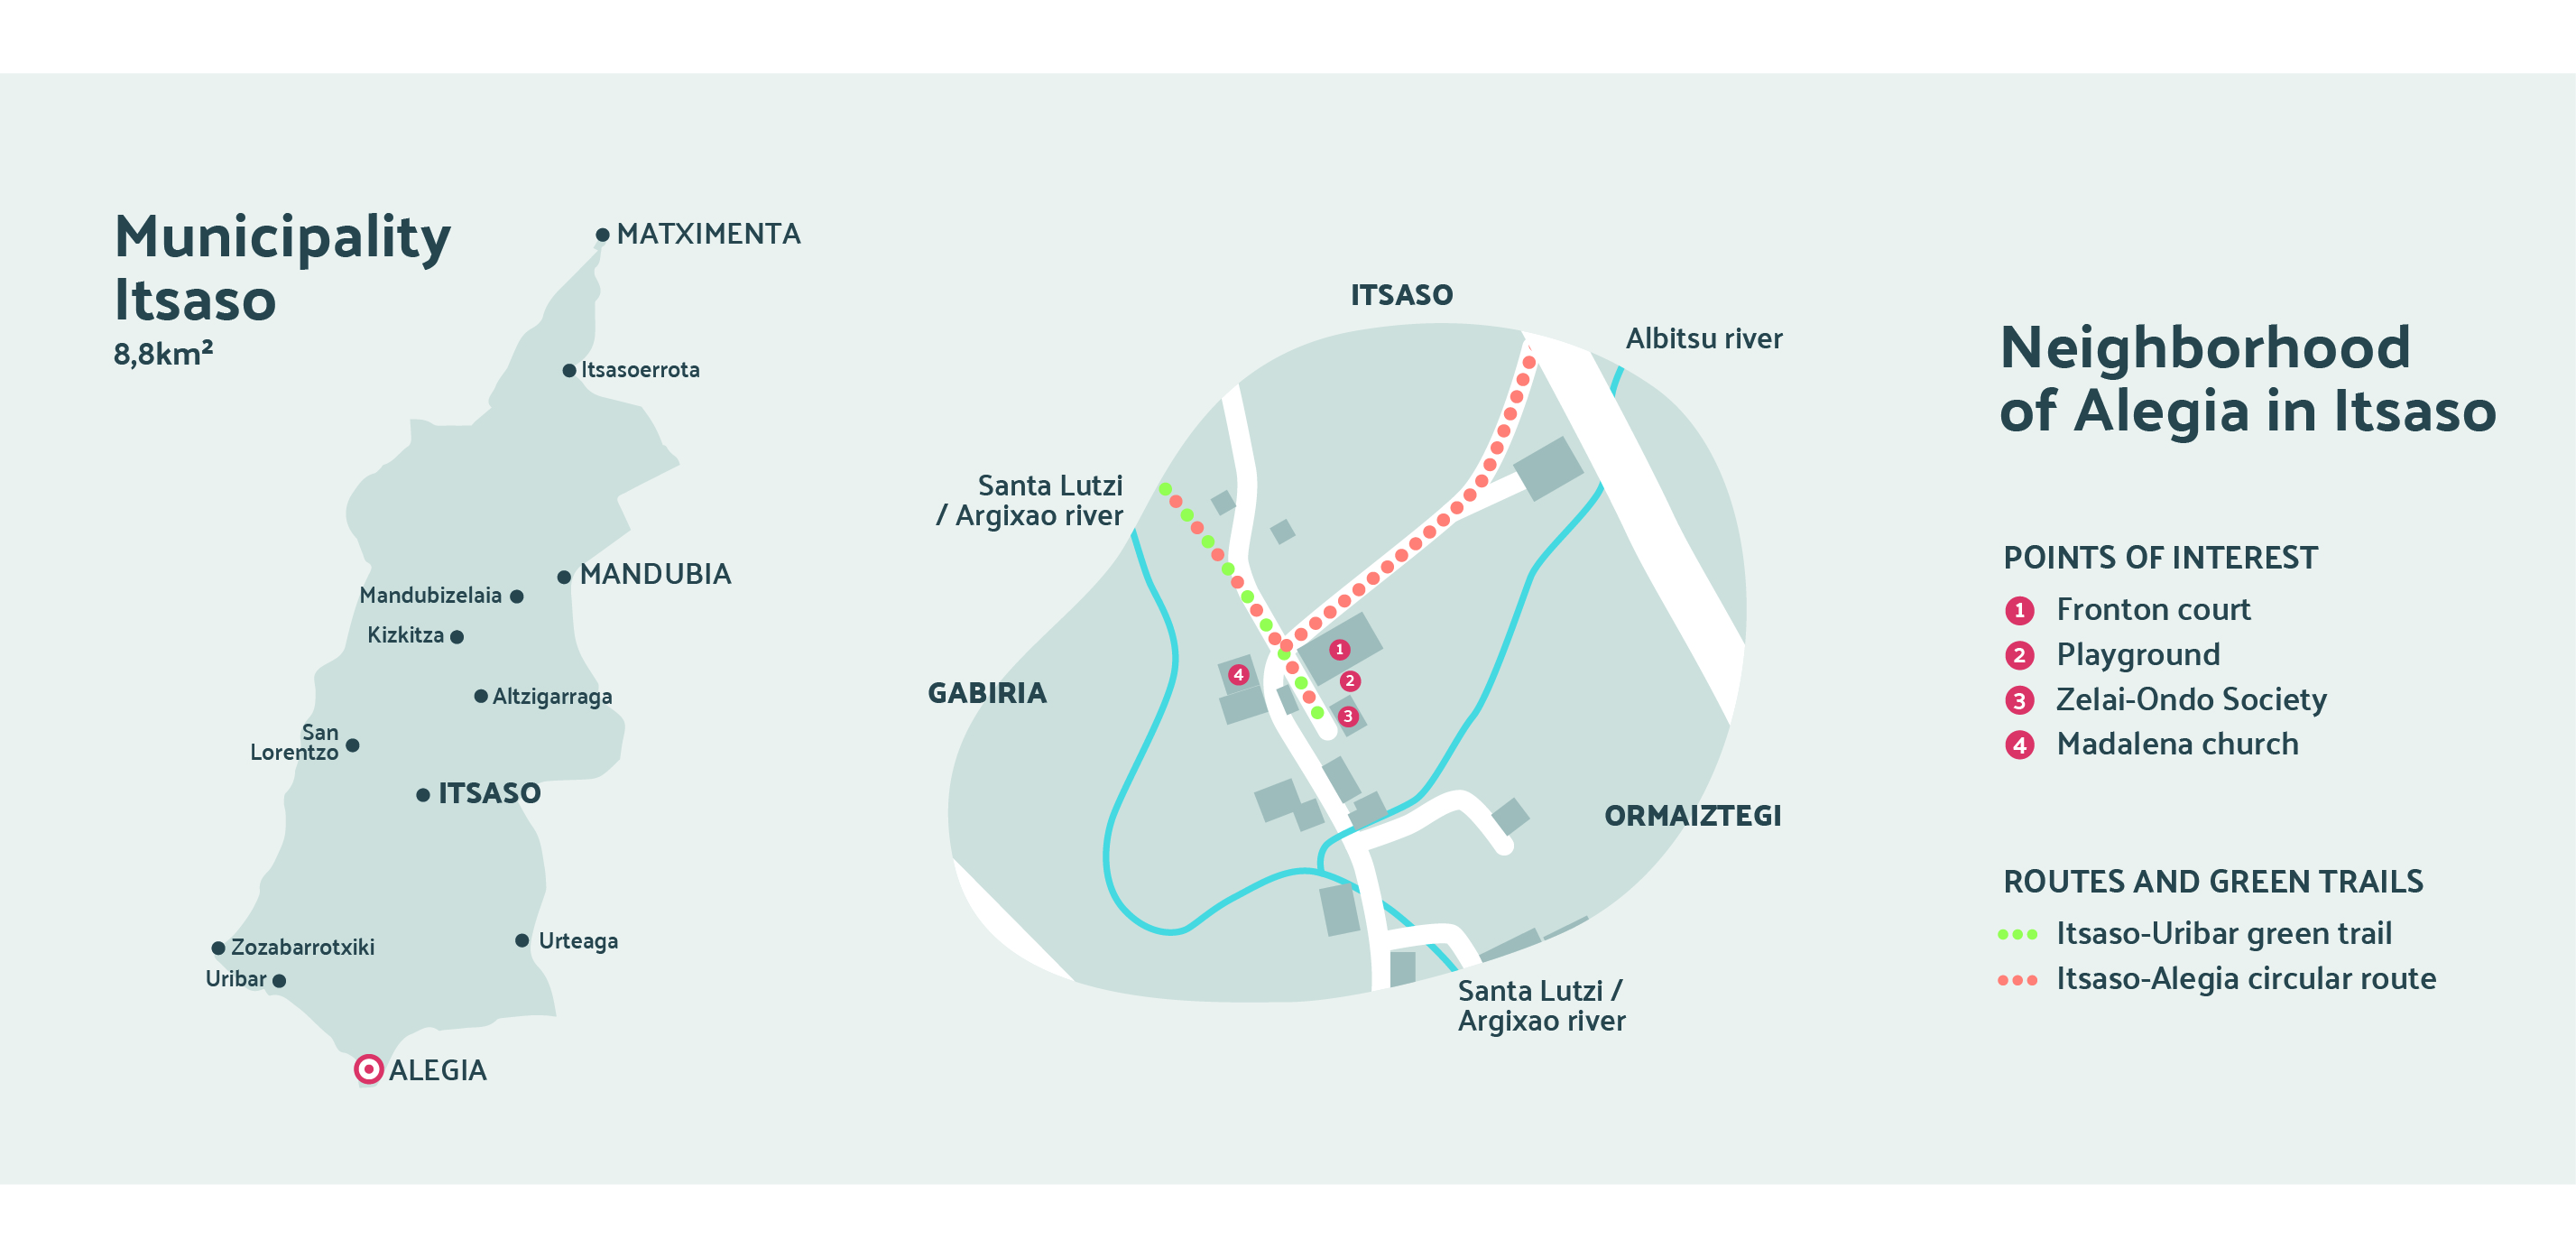 Map - Points of interest in Alegia neighborhood of Itsaso